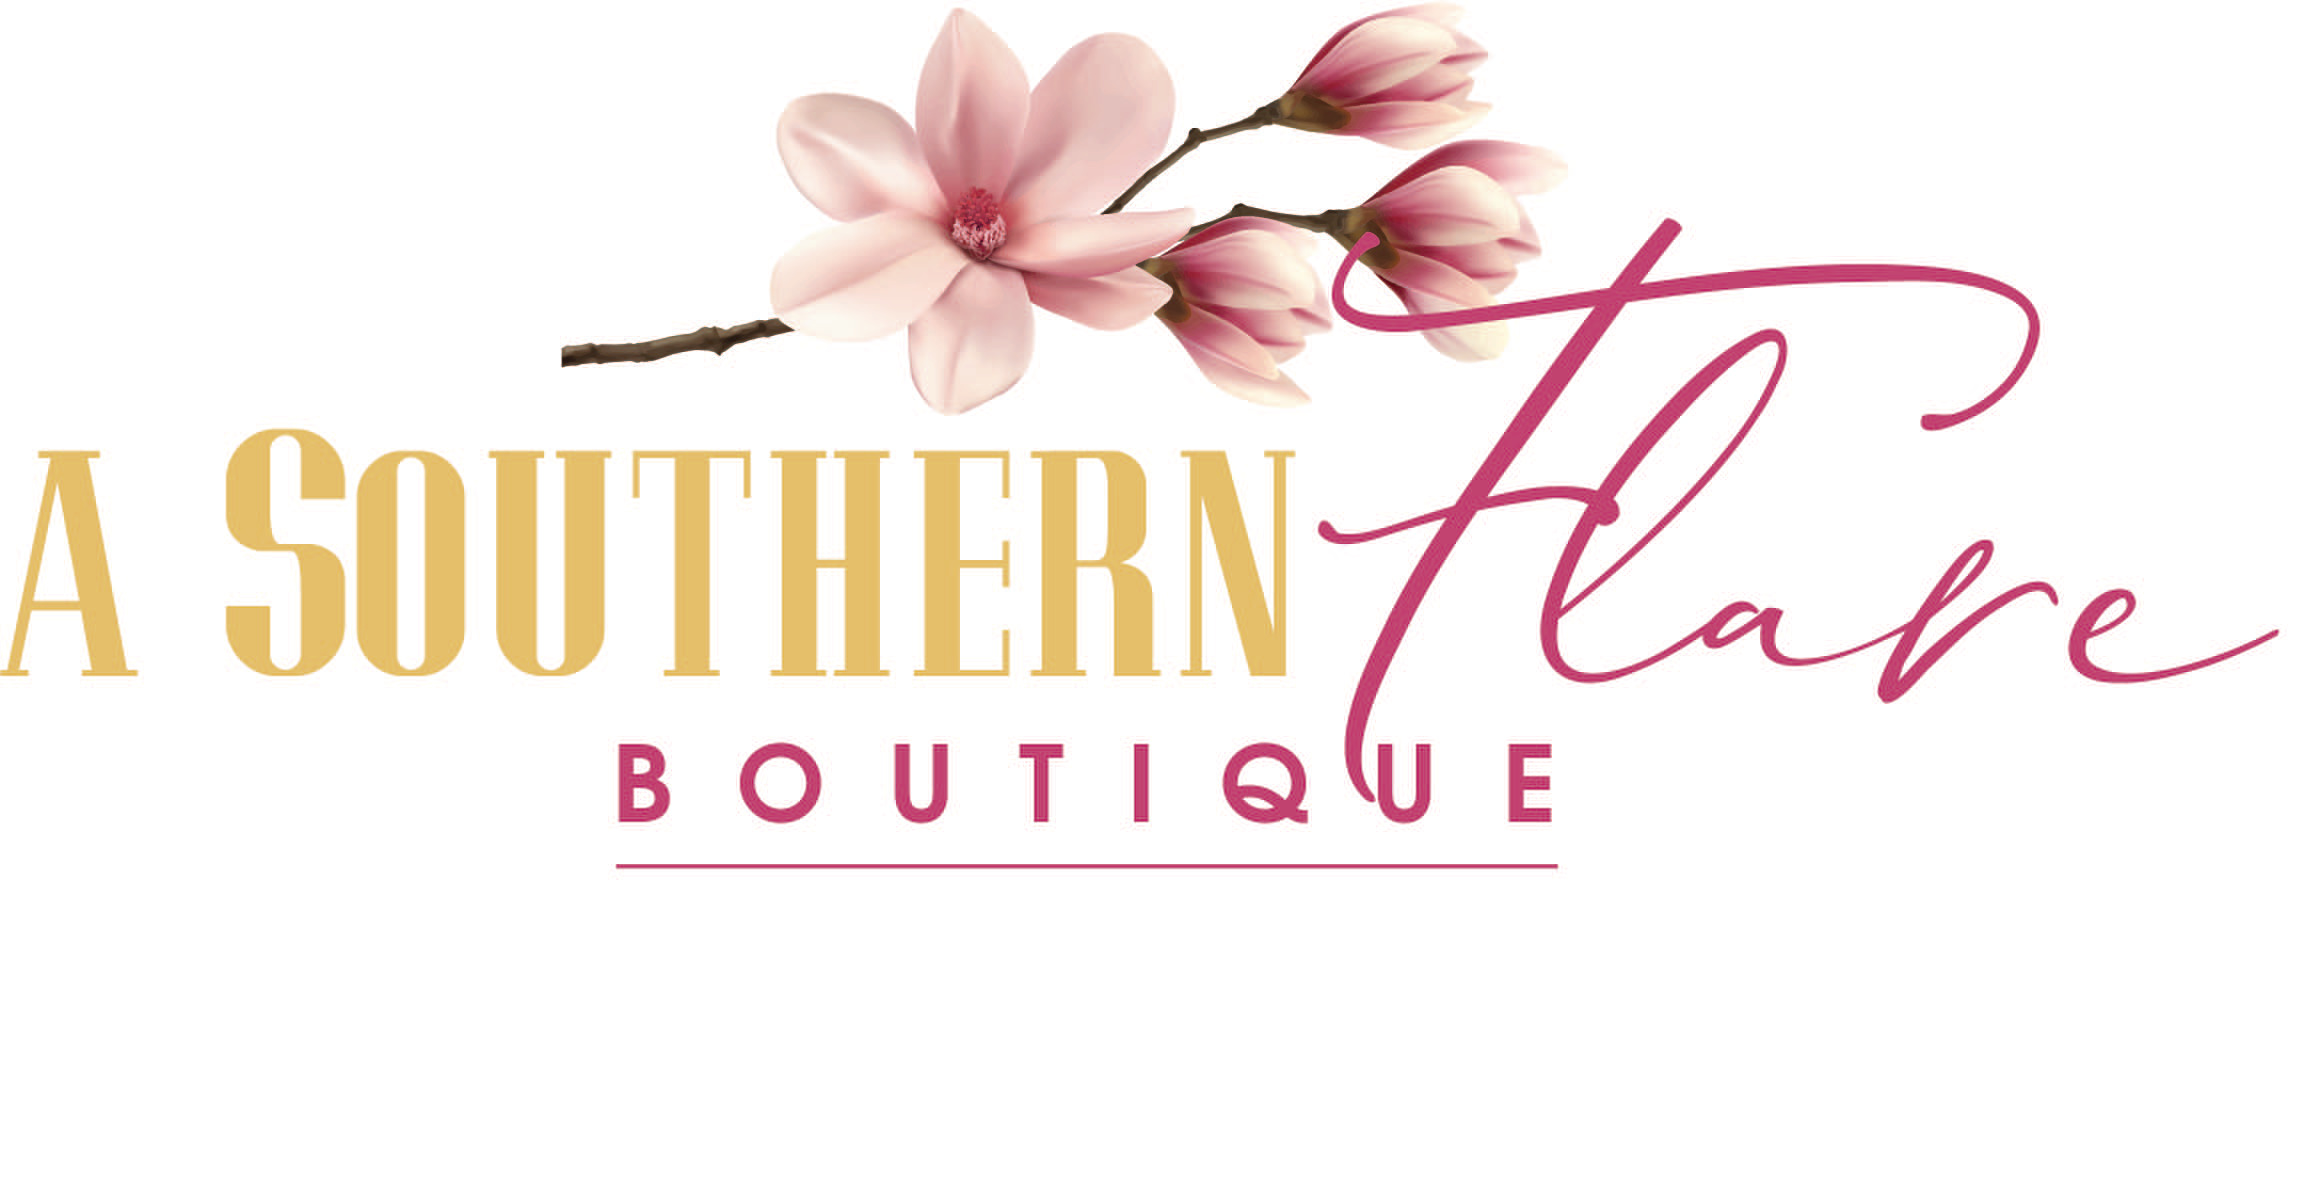 asouthernflare_logo2